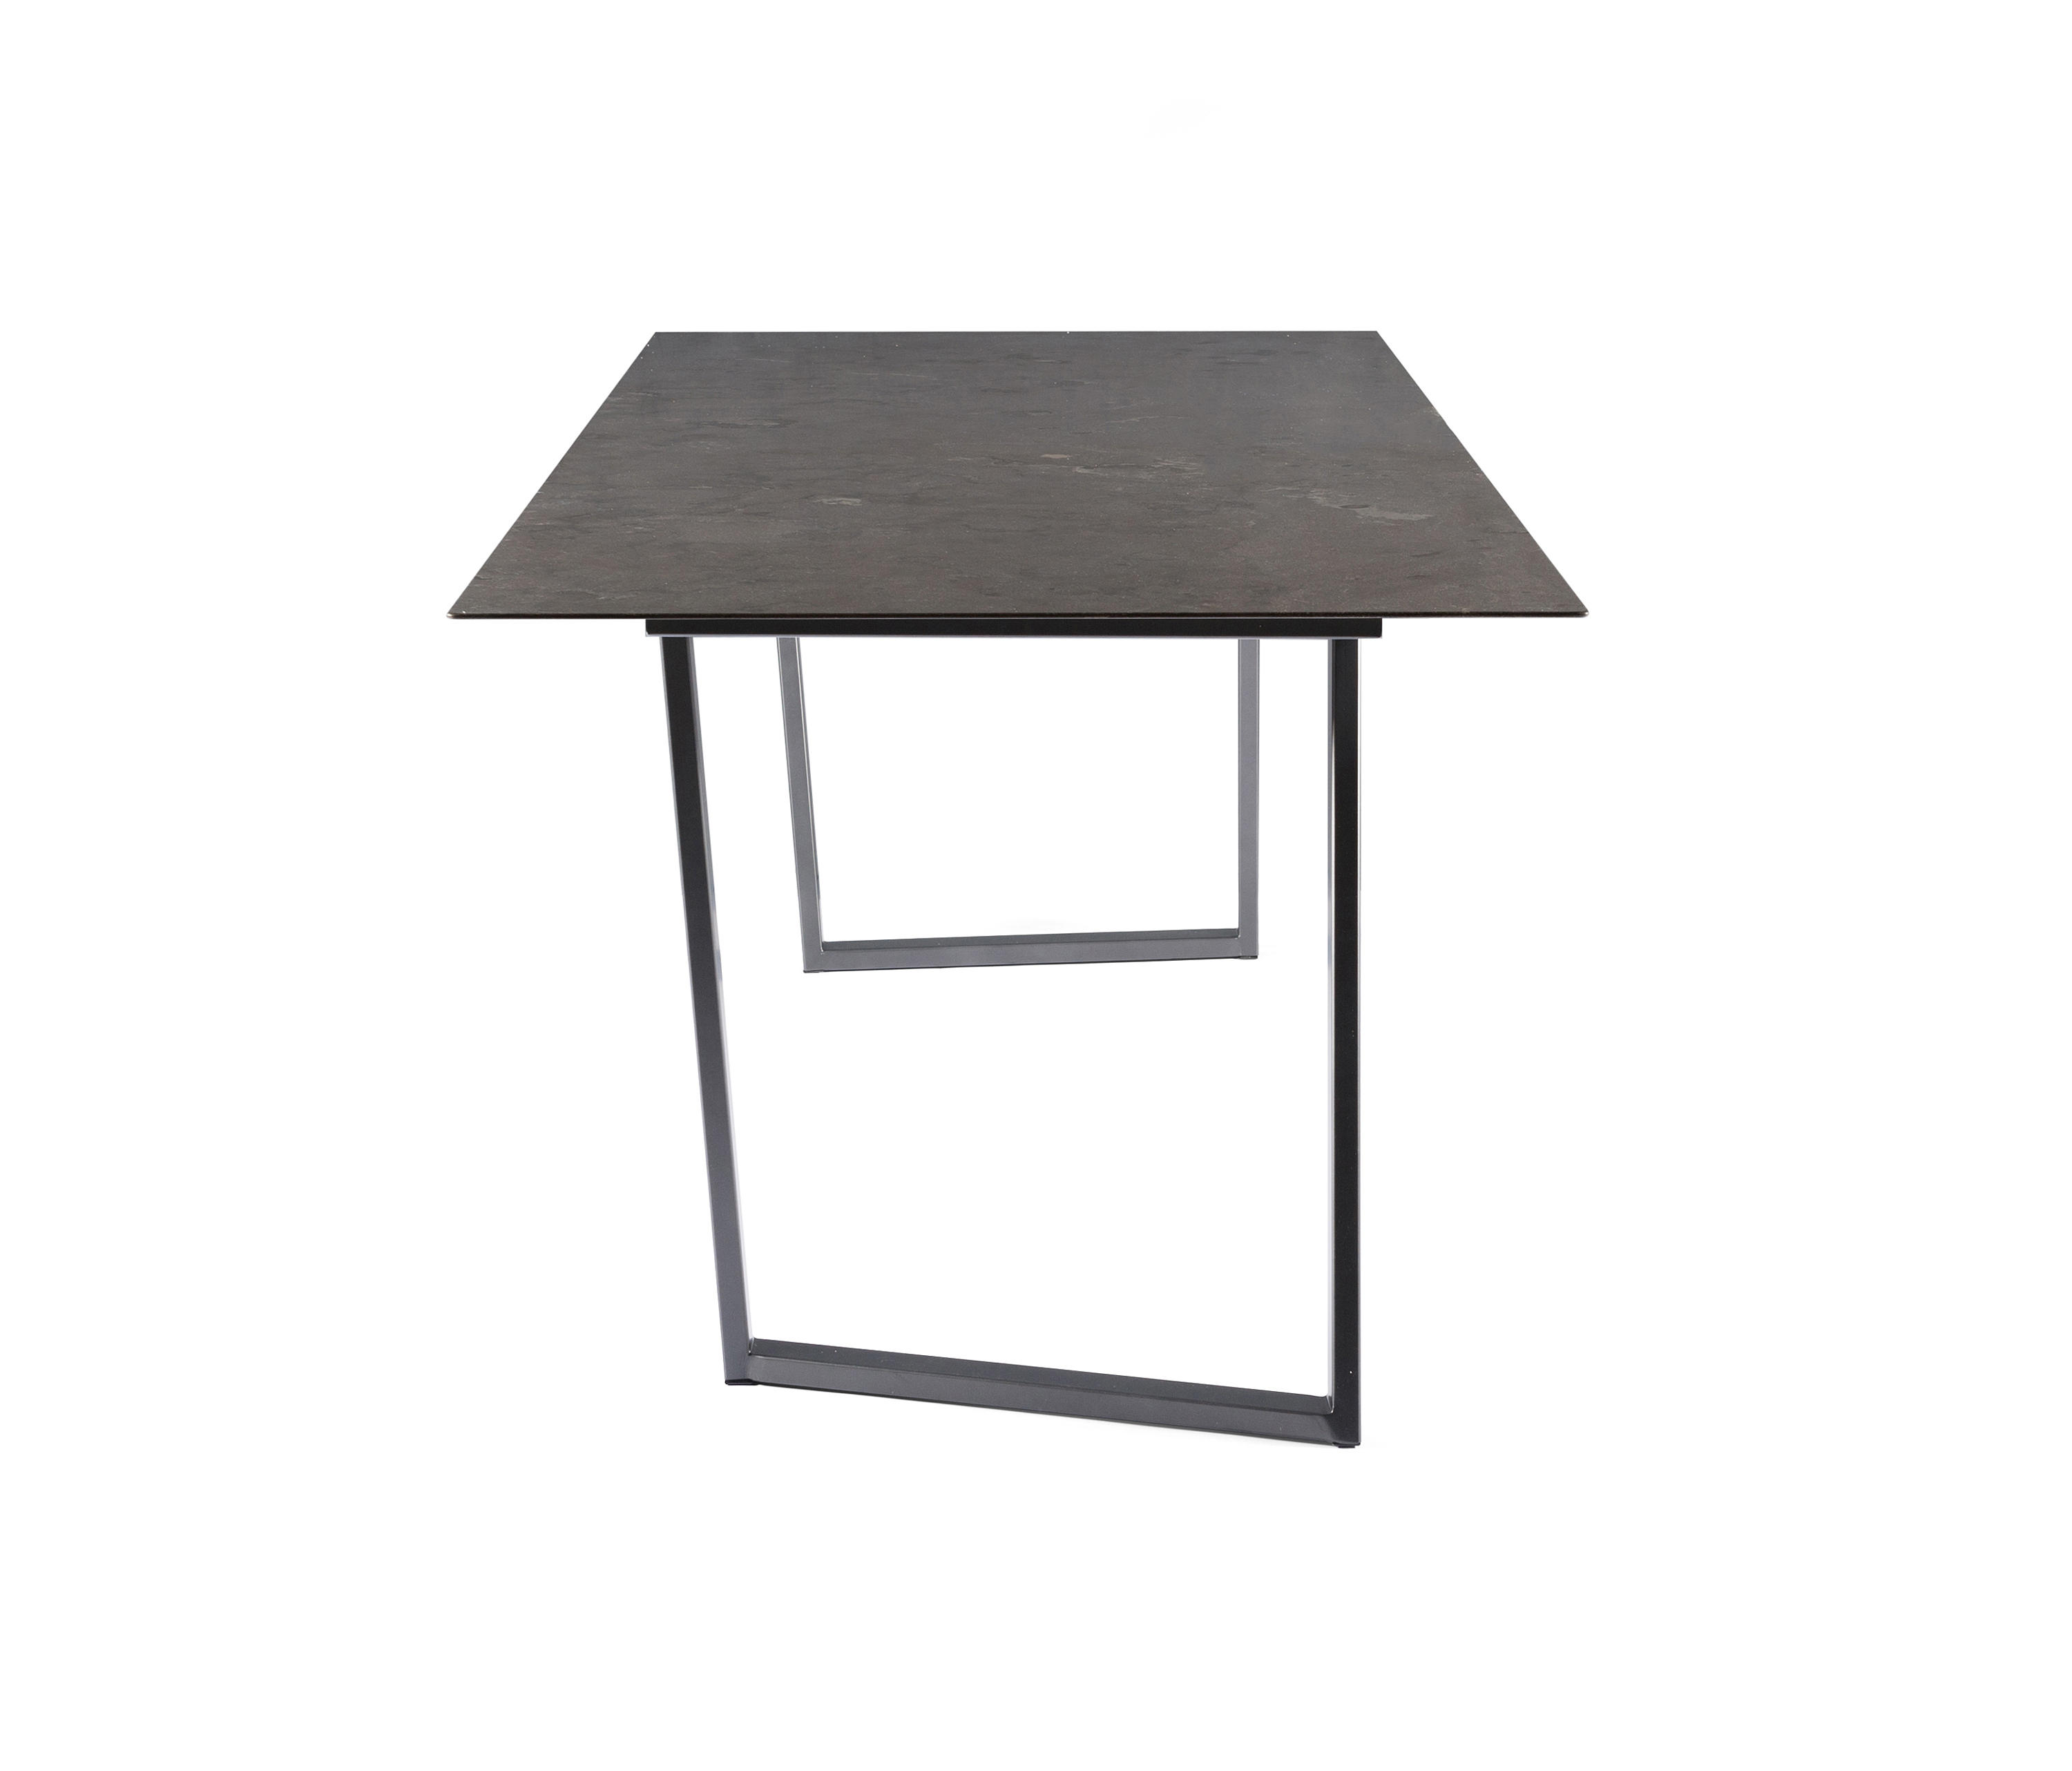 Square restaurant tables - Dritto Dining Table 220 X 90 Cm By Salvatori Restaurant Tables